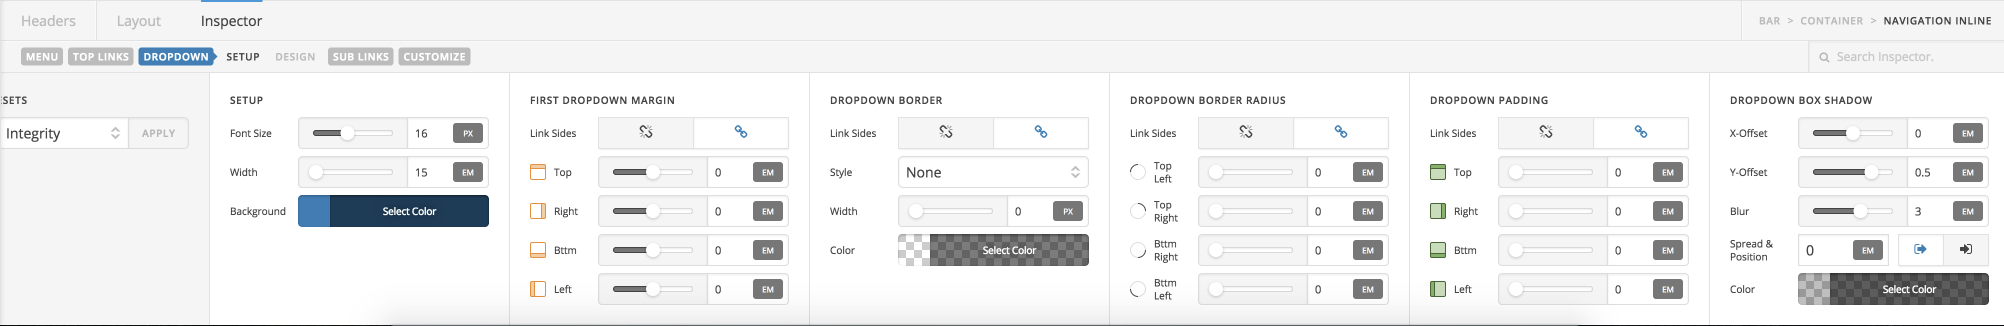 Dropdown Controls